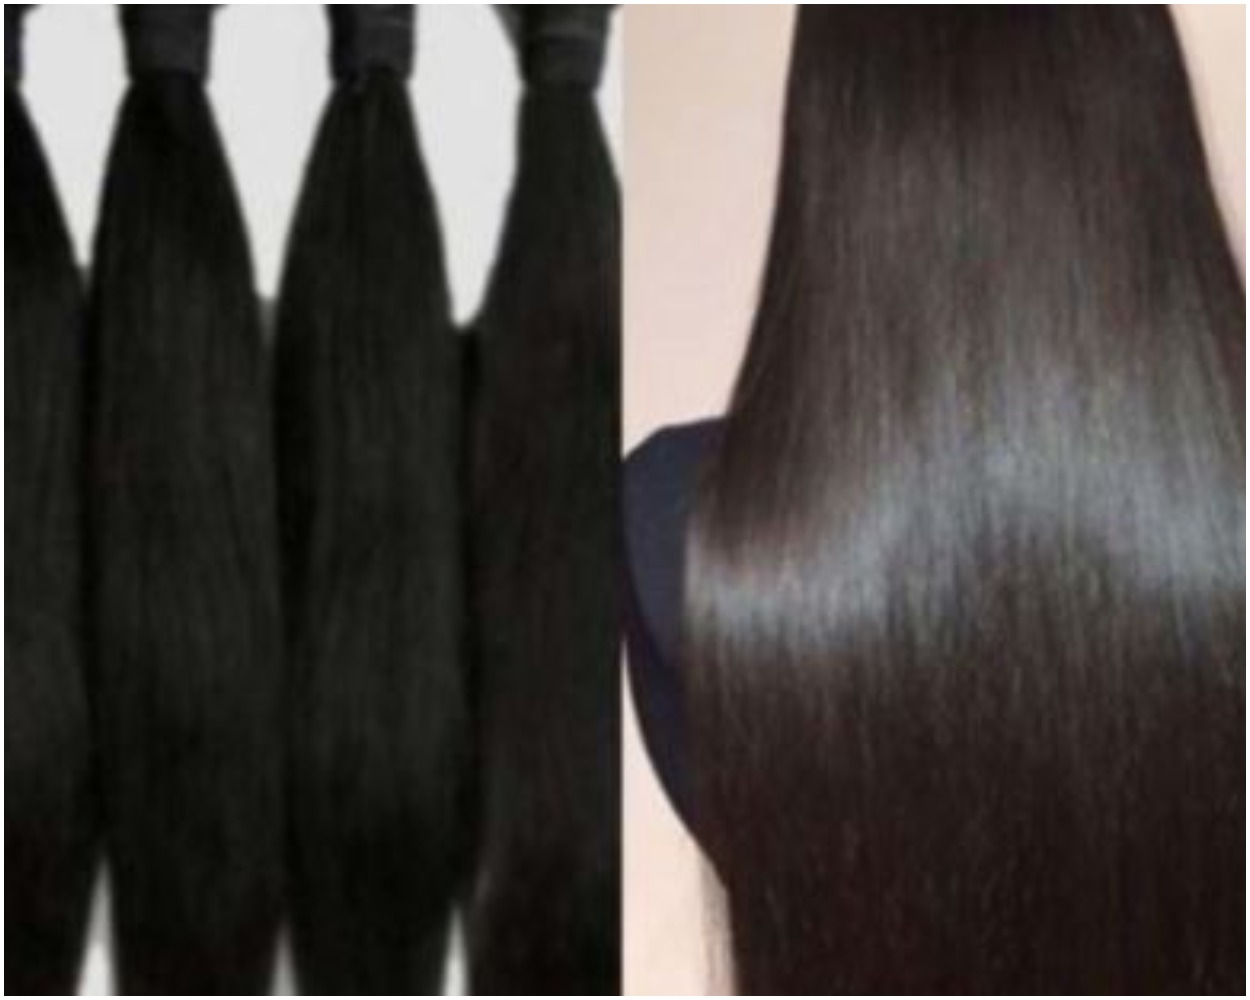 Lady buys hair with money meant for her busines